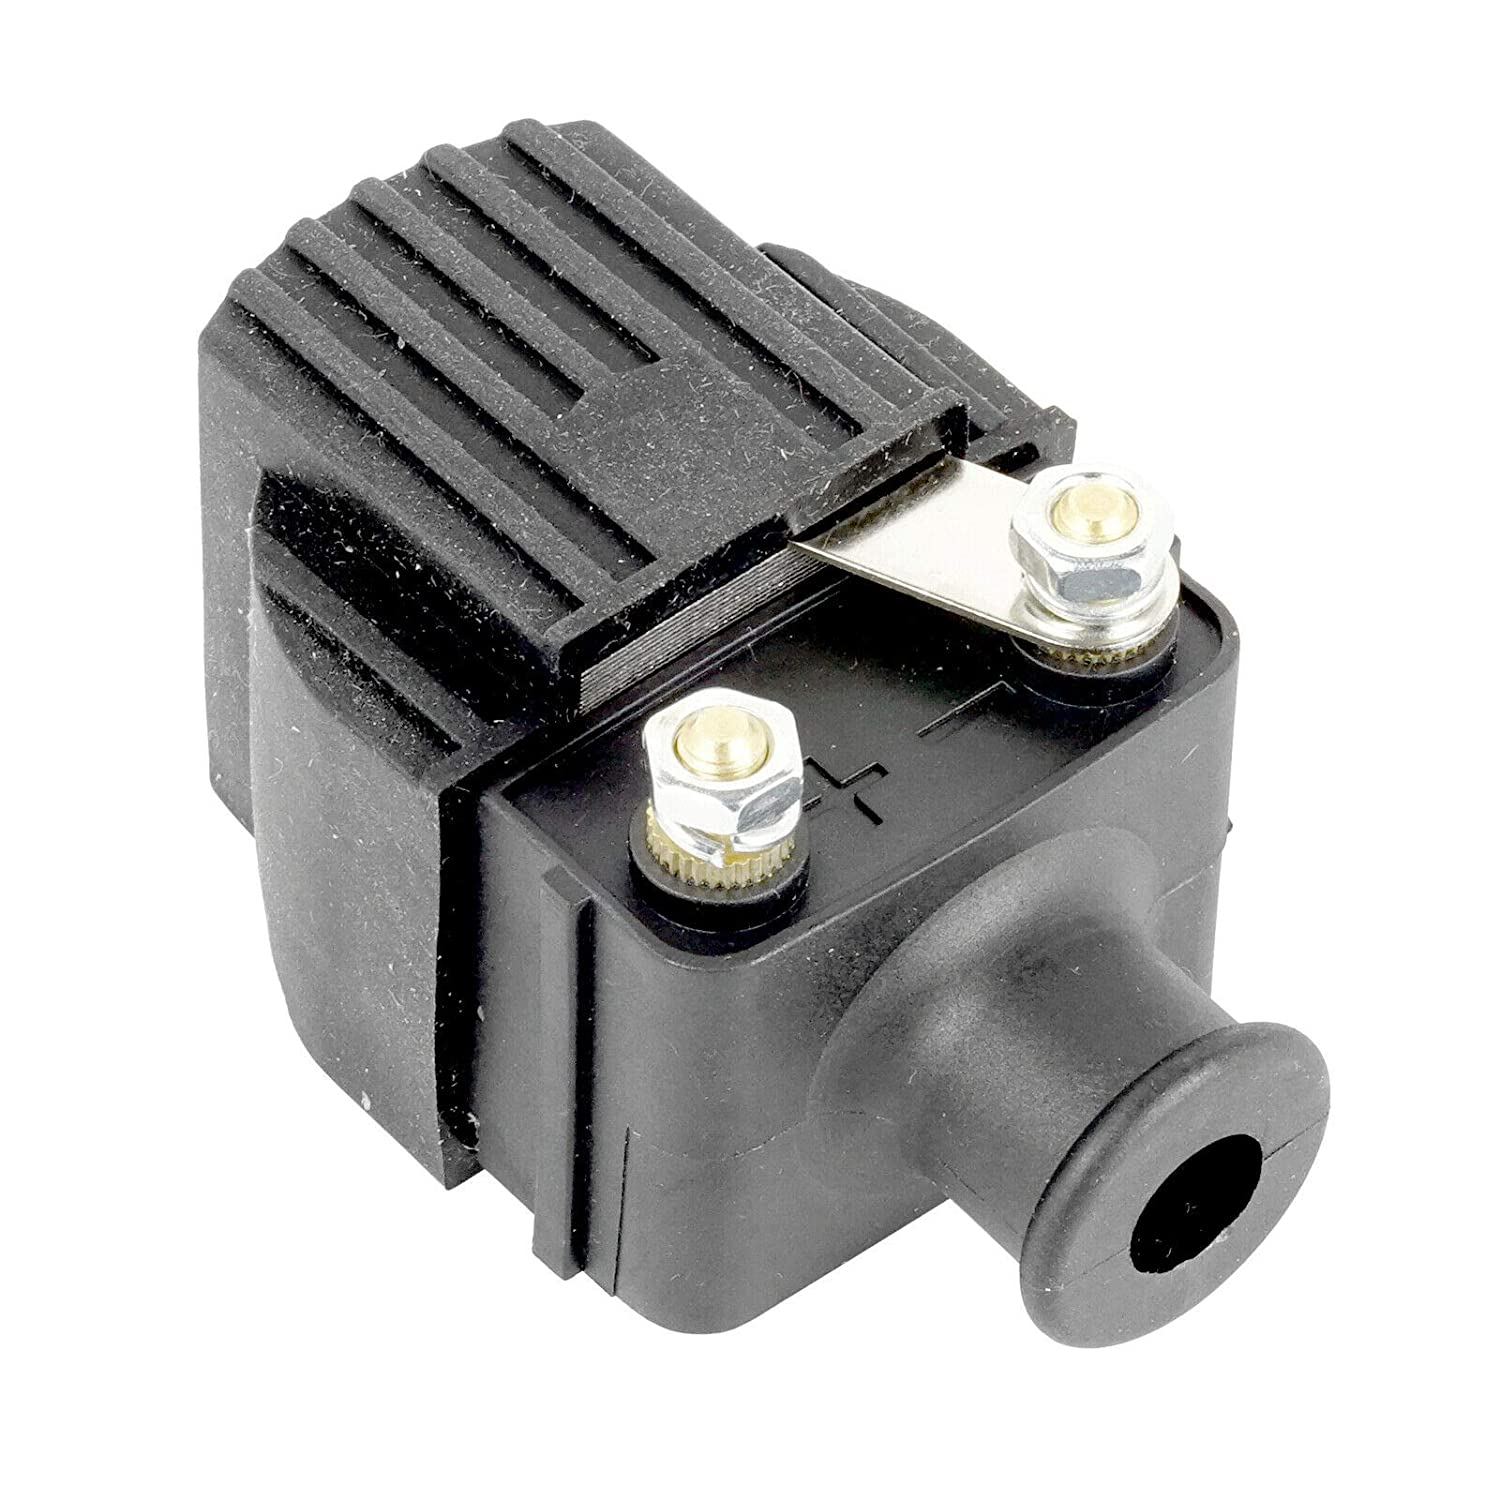 Caltric Ignition Coil for Mercury /& Mariner Enignes 5288A2 7370A6 7370A8 7370A2 7370A13